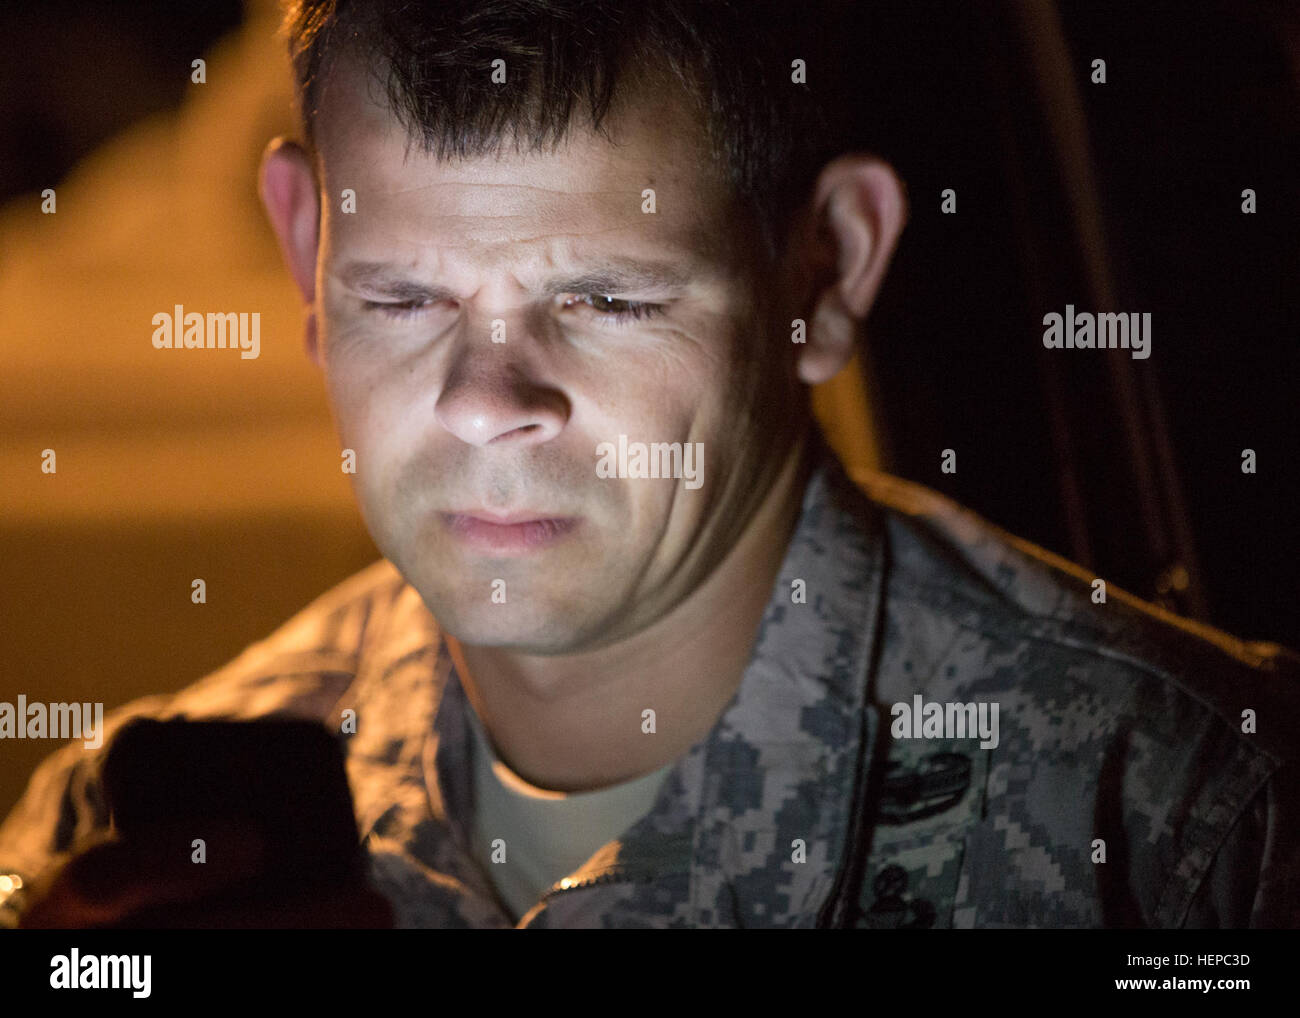 U.S. Army Sgt. 1st Class Luis Irizarry checks the weather and wind conditions during night airborne operations training Stock Photo